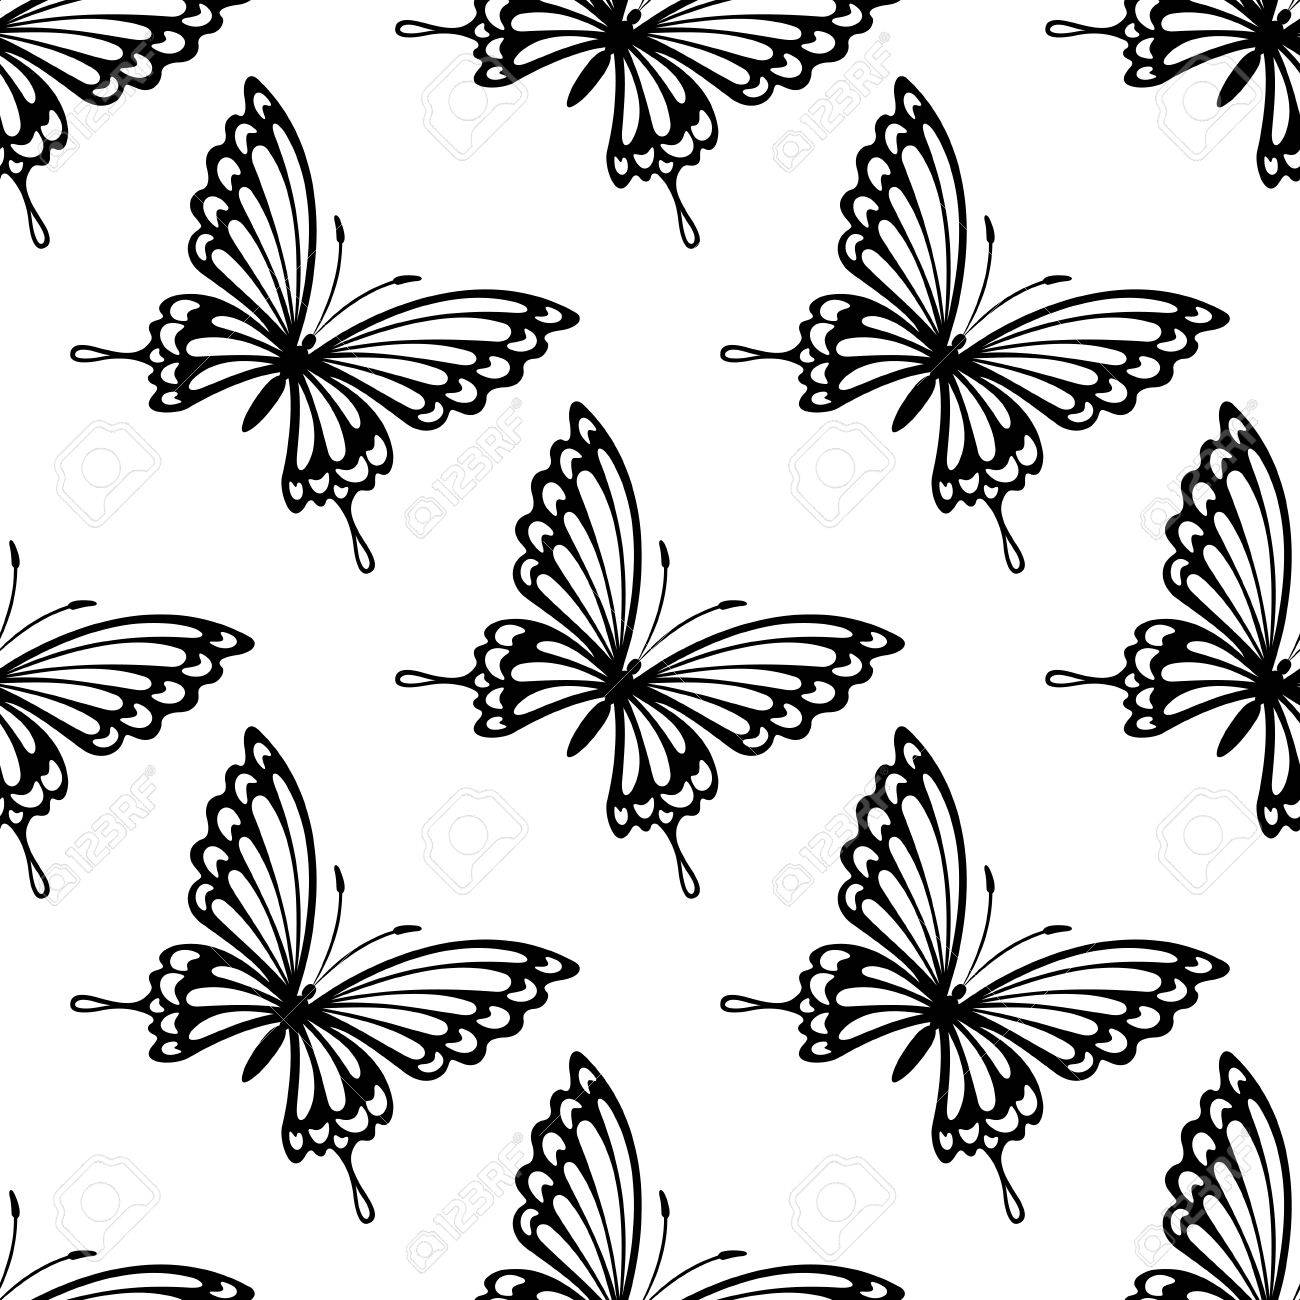 Dainty Black And White Seamless Pattern Of Flying Butterflies In Square Format For Wallpaper Stock Vector